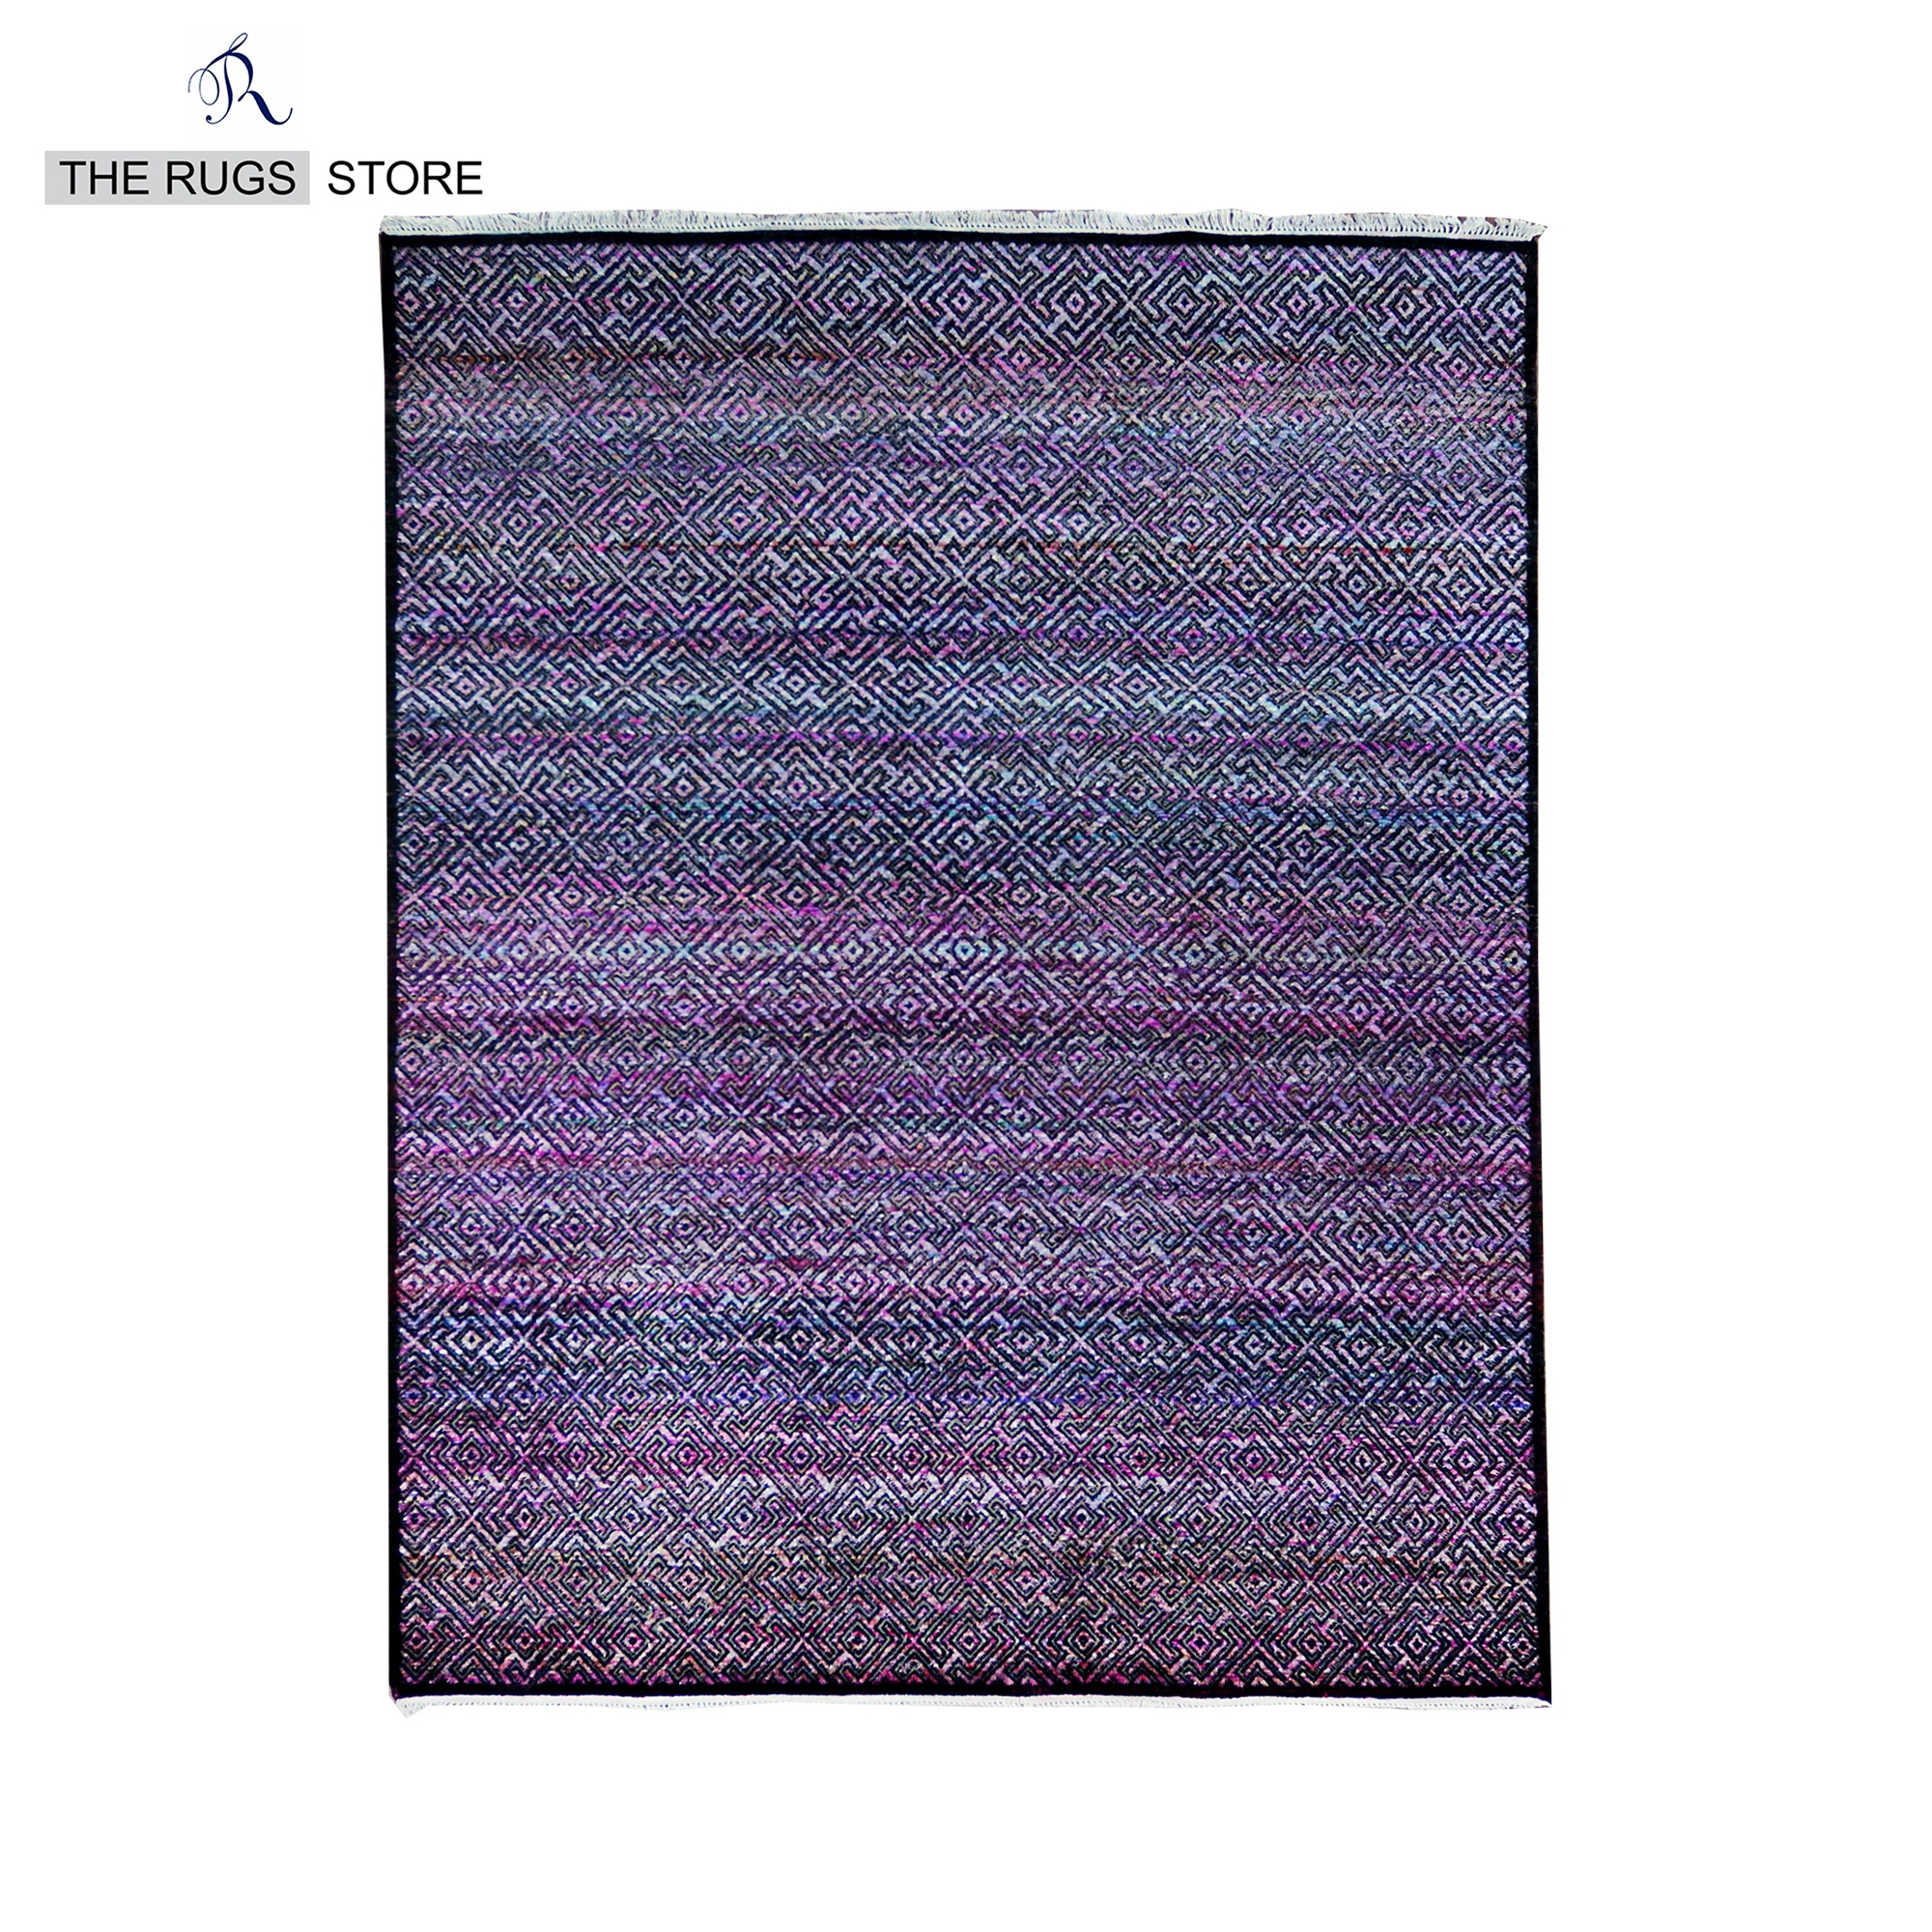 Hand Knotted Wool And Sari Silk Modern Black Violet Area Rug Q 230 Buy India Wool Silk Rugs Indian Hand Knotted Rugs Handmade Modern Silk Rugs Product On Alibaba Com